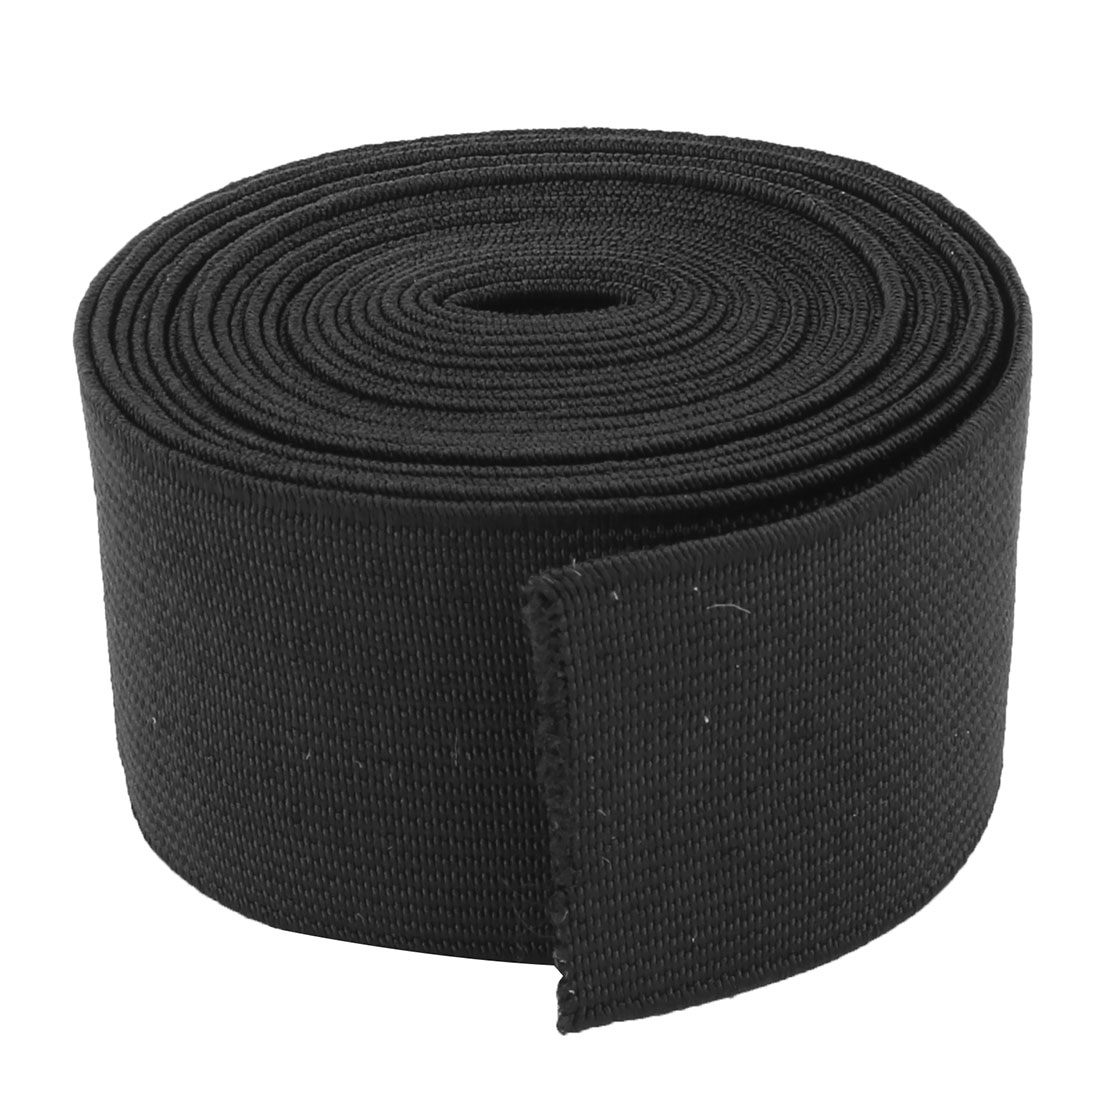 Polyester DIY Sewing Handcraft Clothes Cuff Elastic Band Black 2.73 Yards